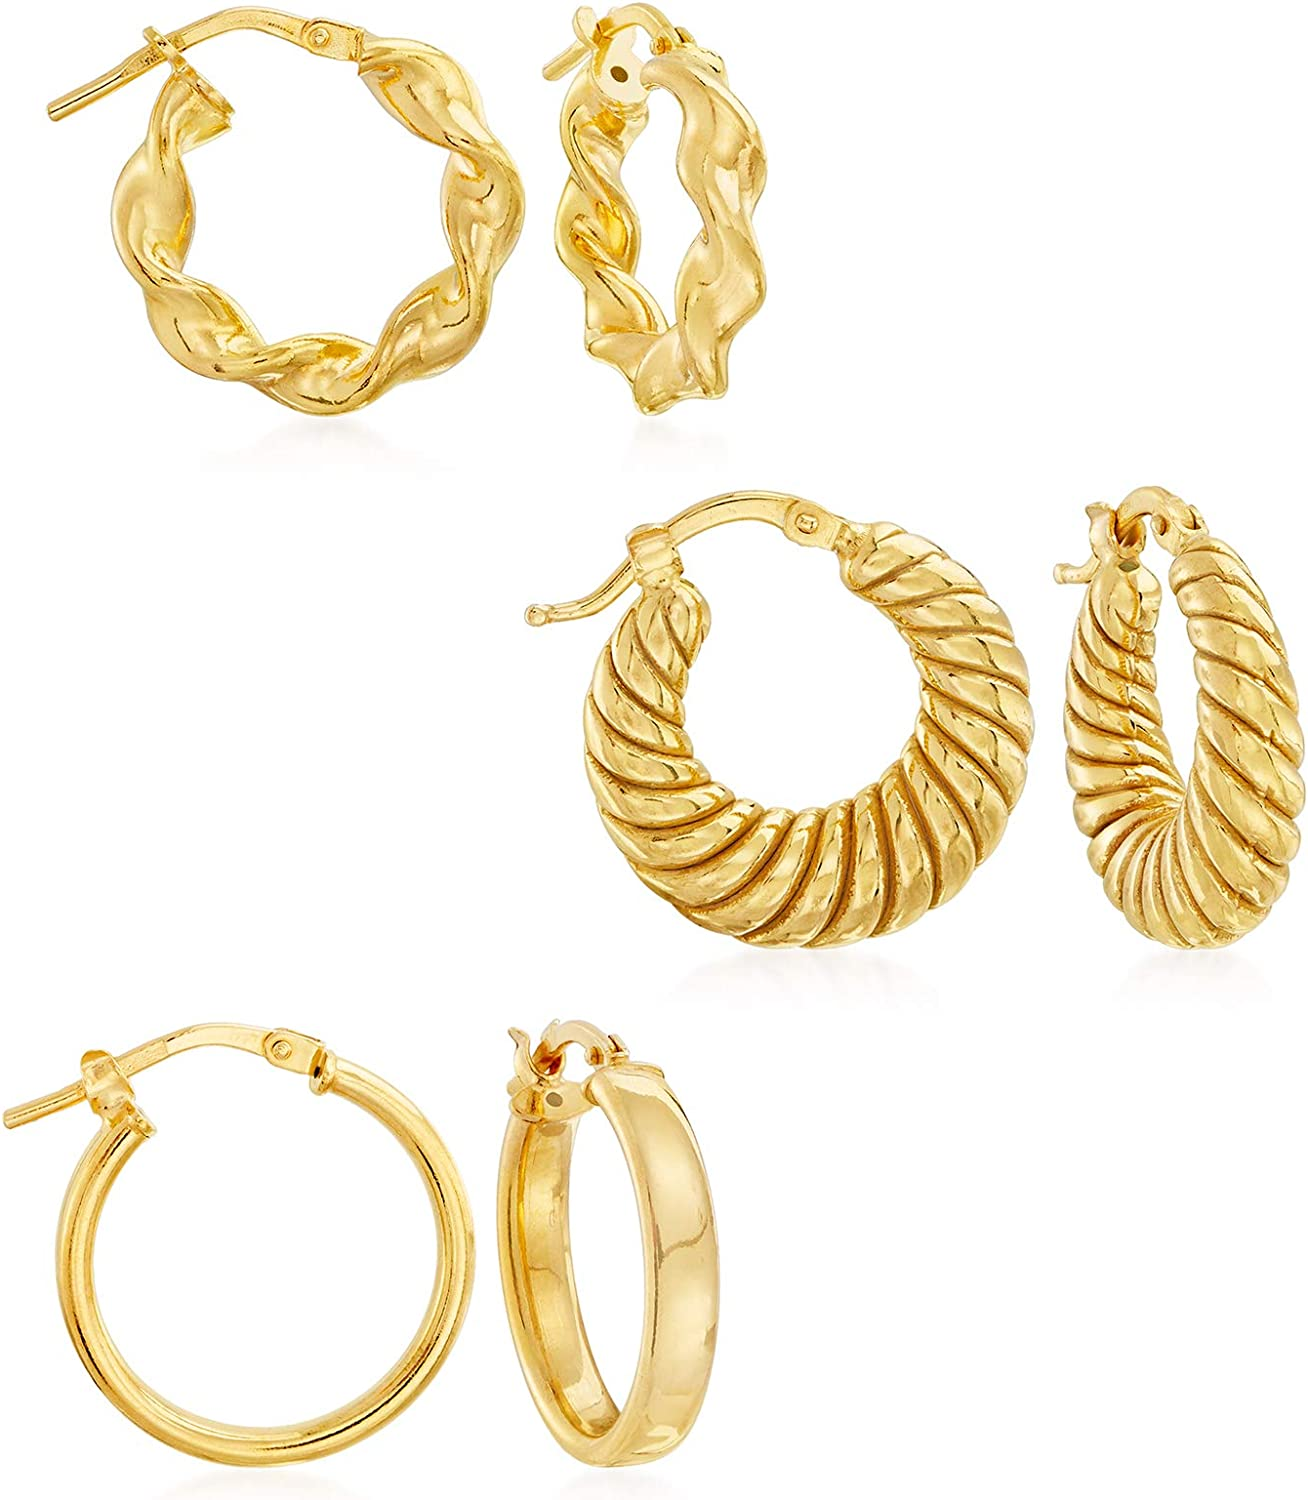 Ross-Simons Italian 18kt Gold Over 3 Jewelry Set: Popular Sterling Sale Pairs